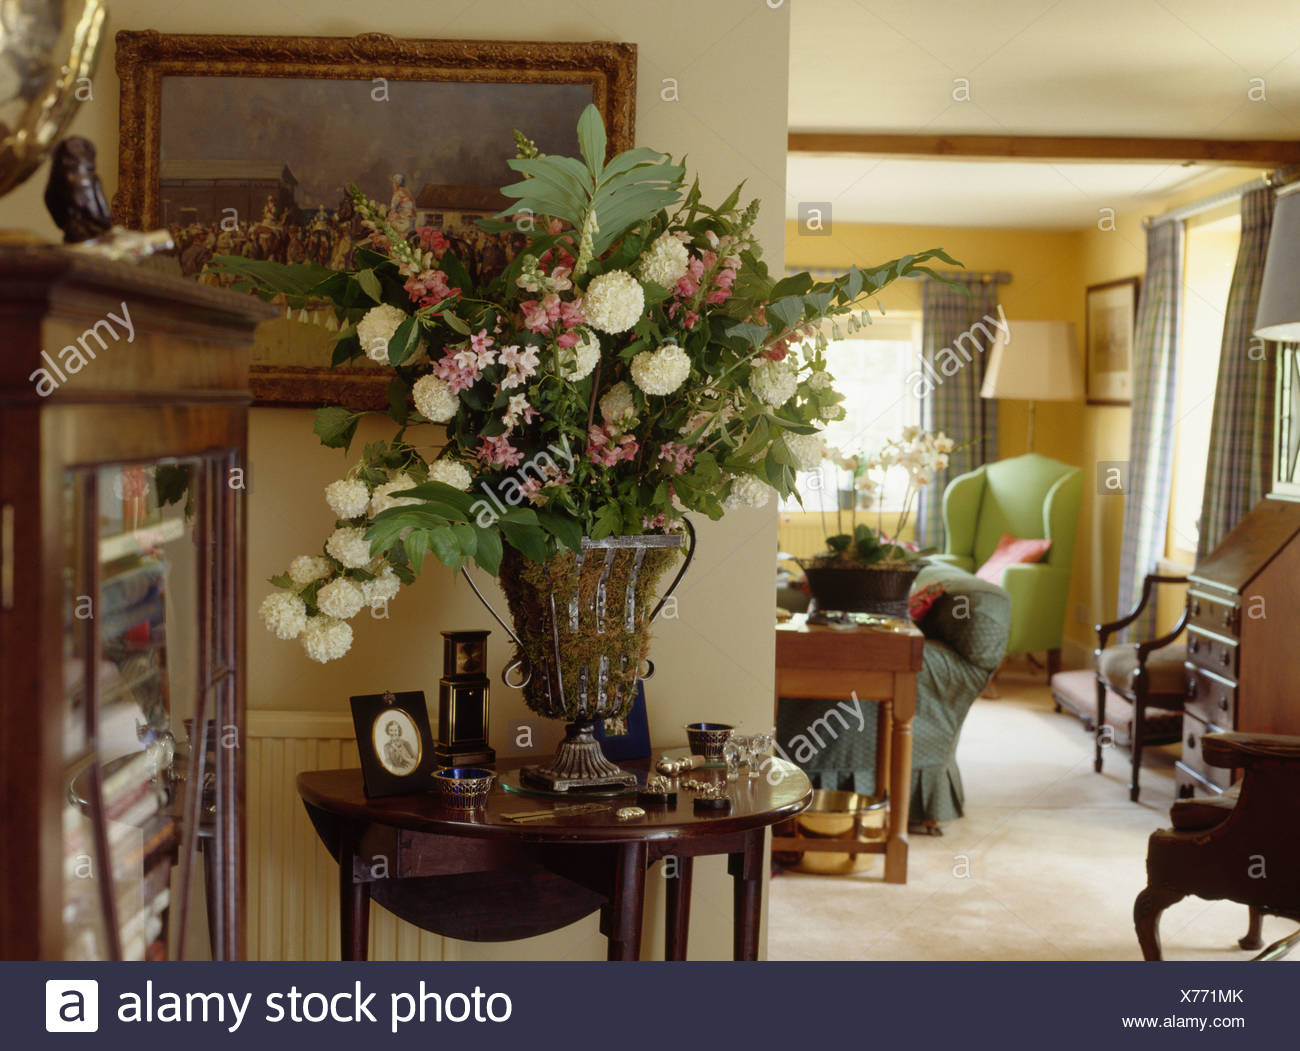 Attirant Large Floral Arrangement In Urn On Antique Console Table In Cottage Living  Room